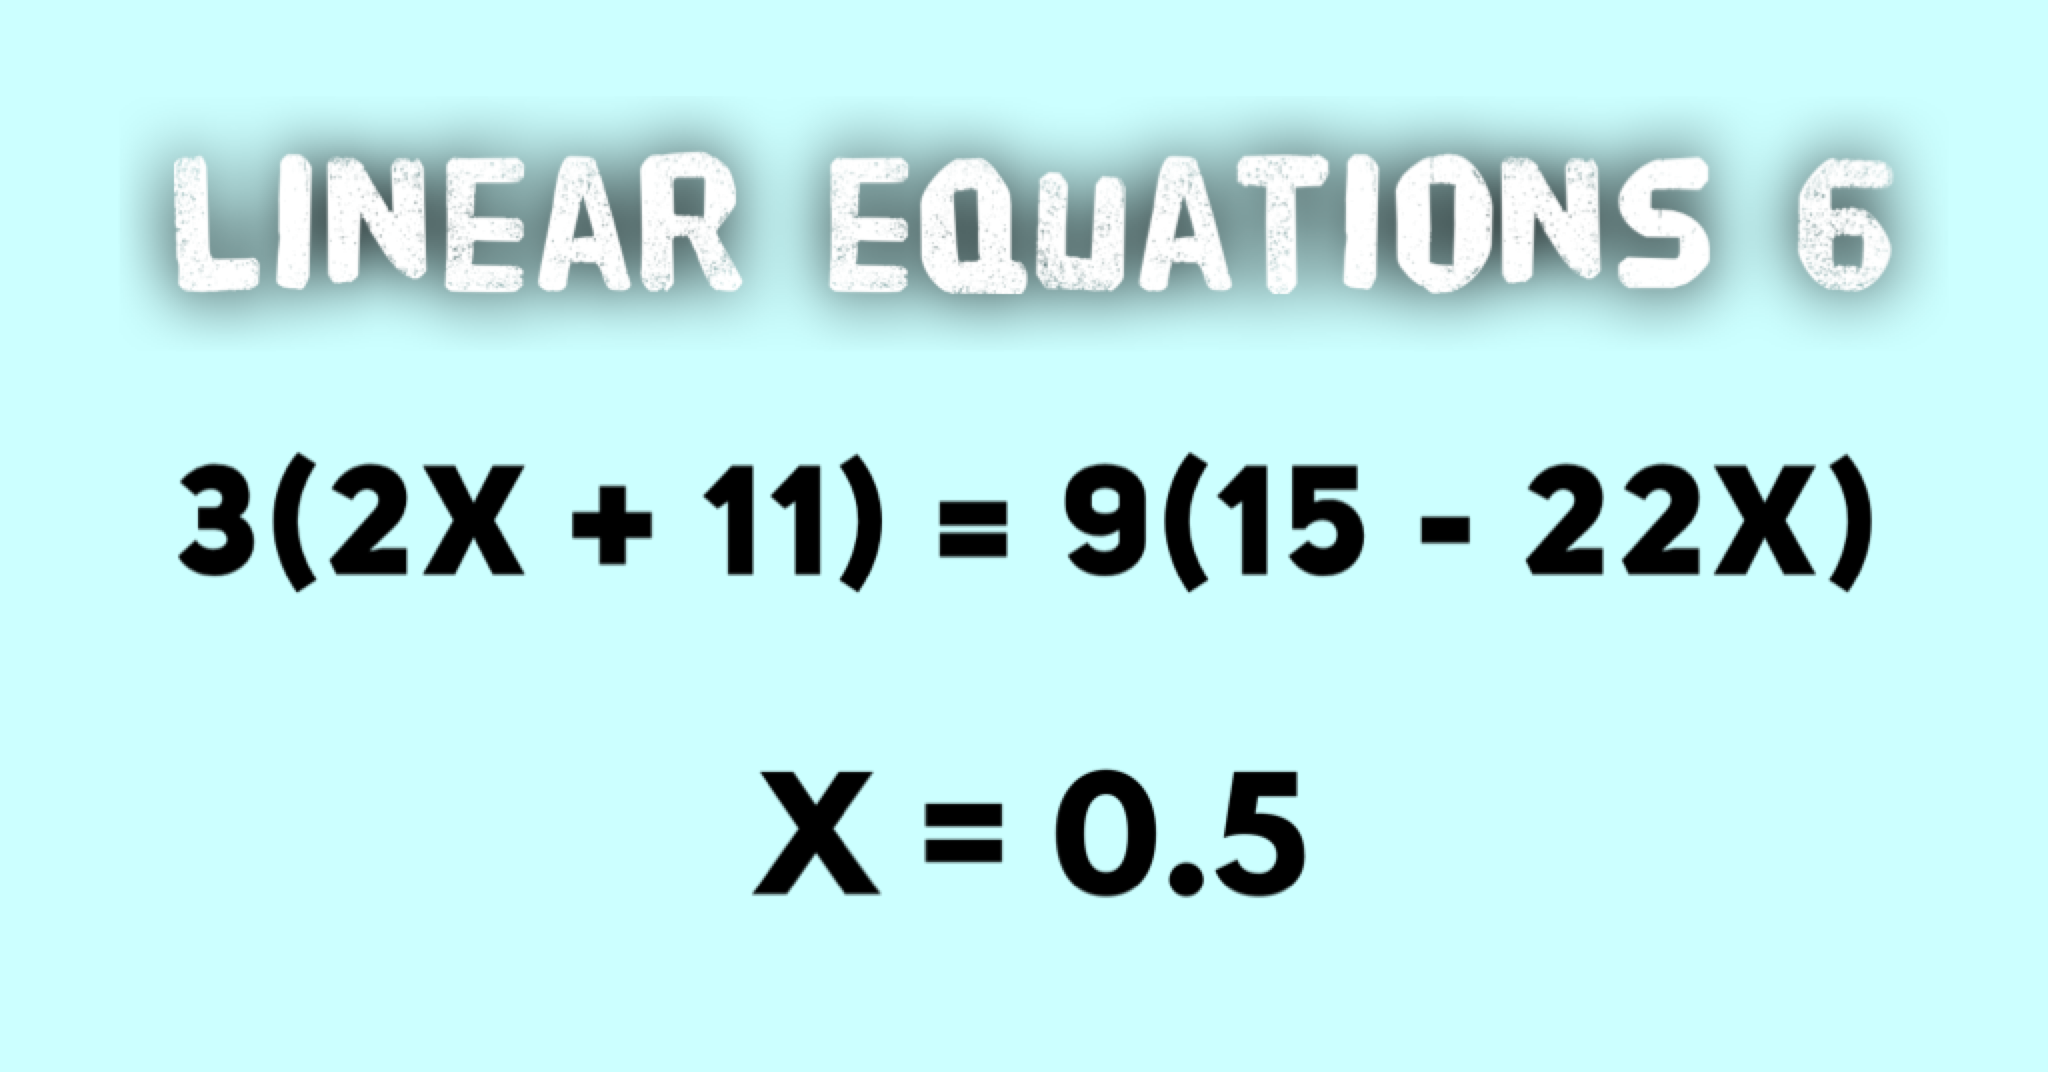 Linear Equations Example 6